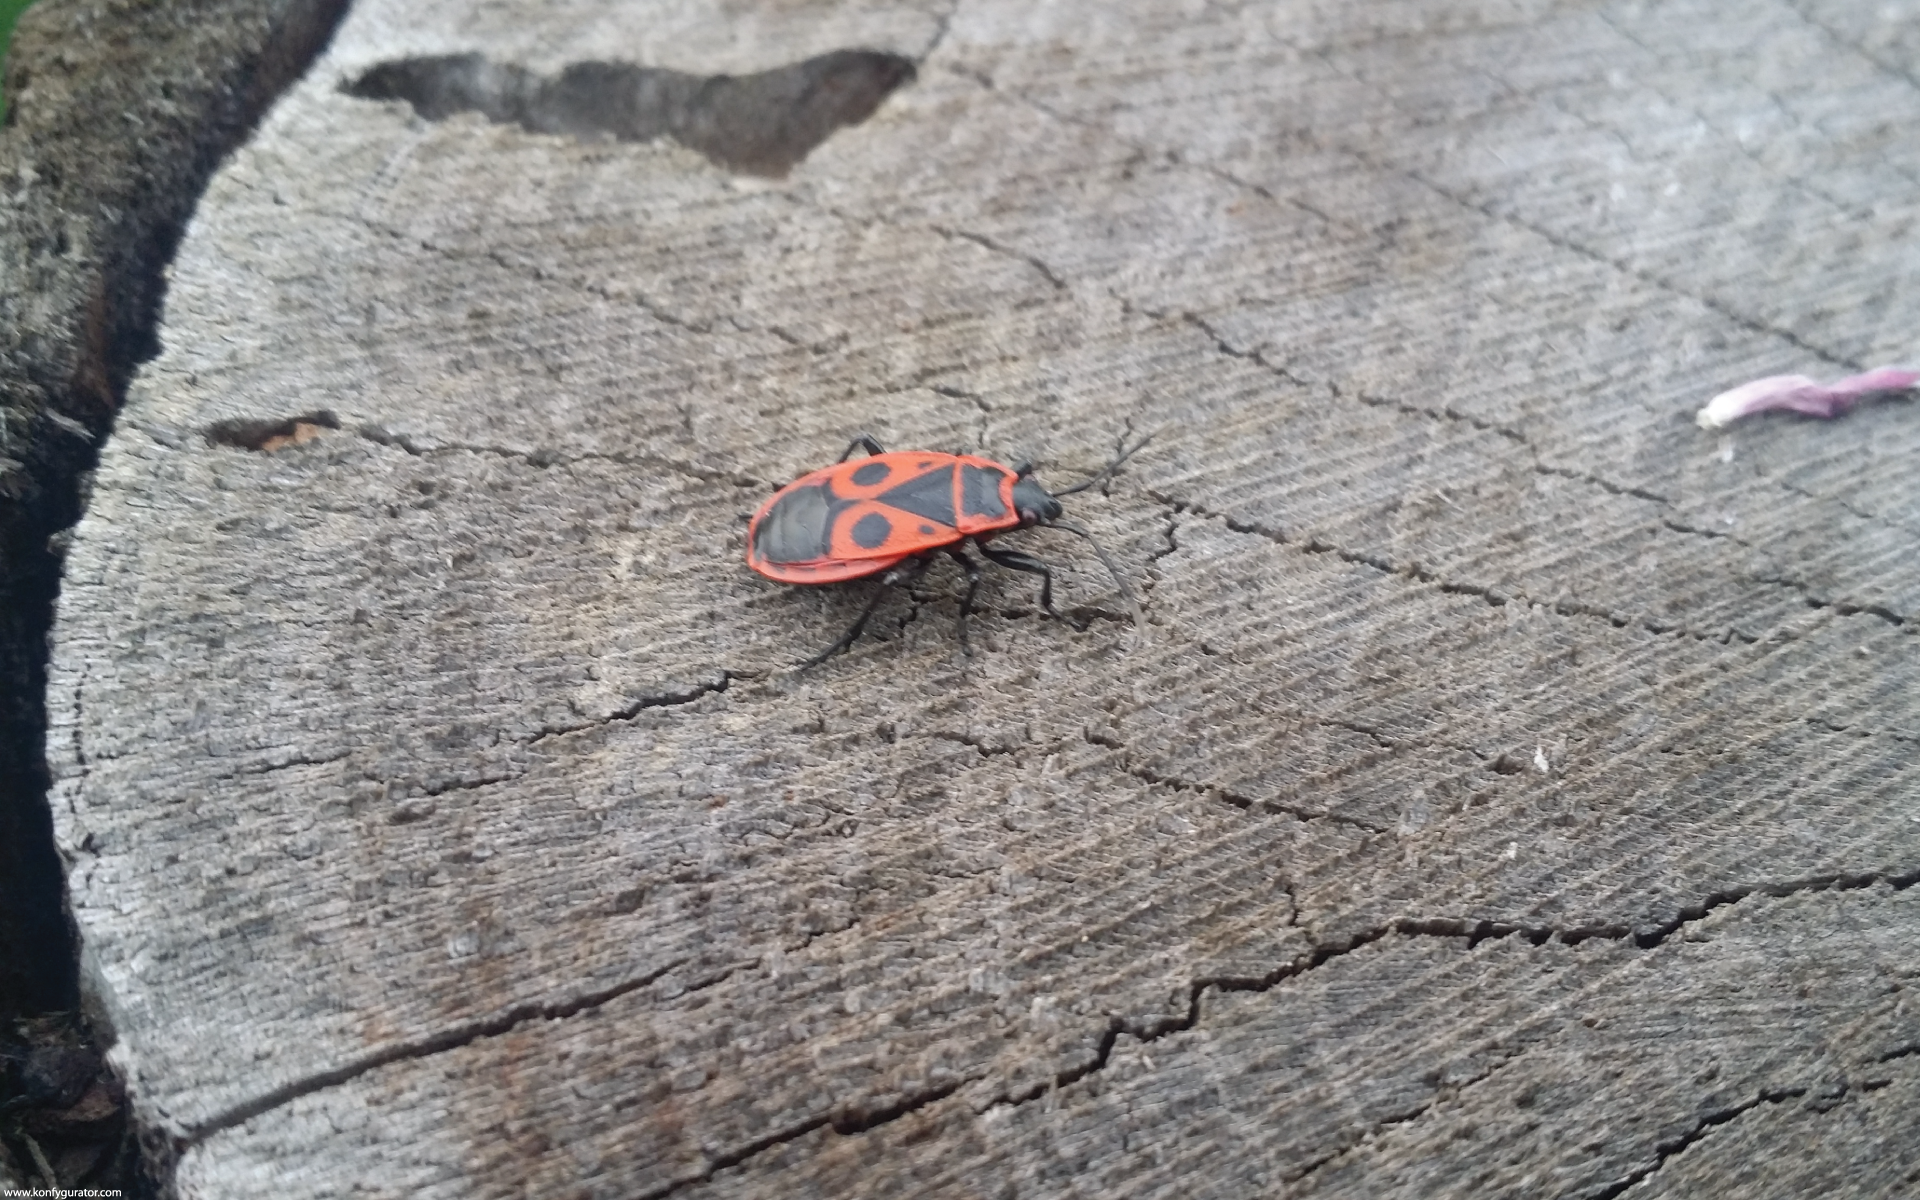 HD Wallpapers - Nature - stump, bug, red